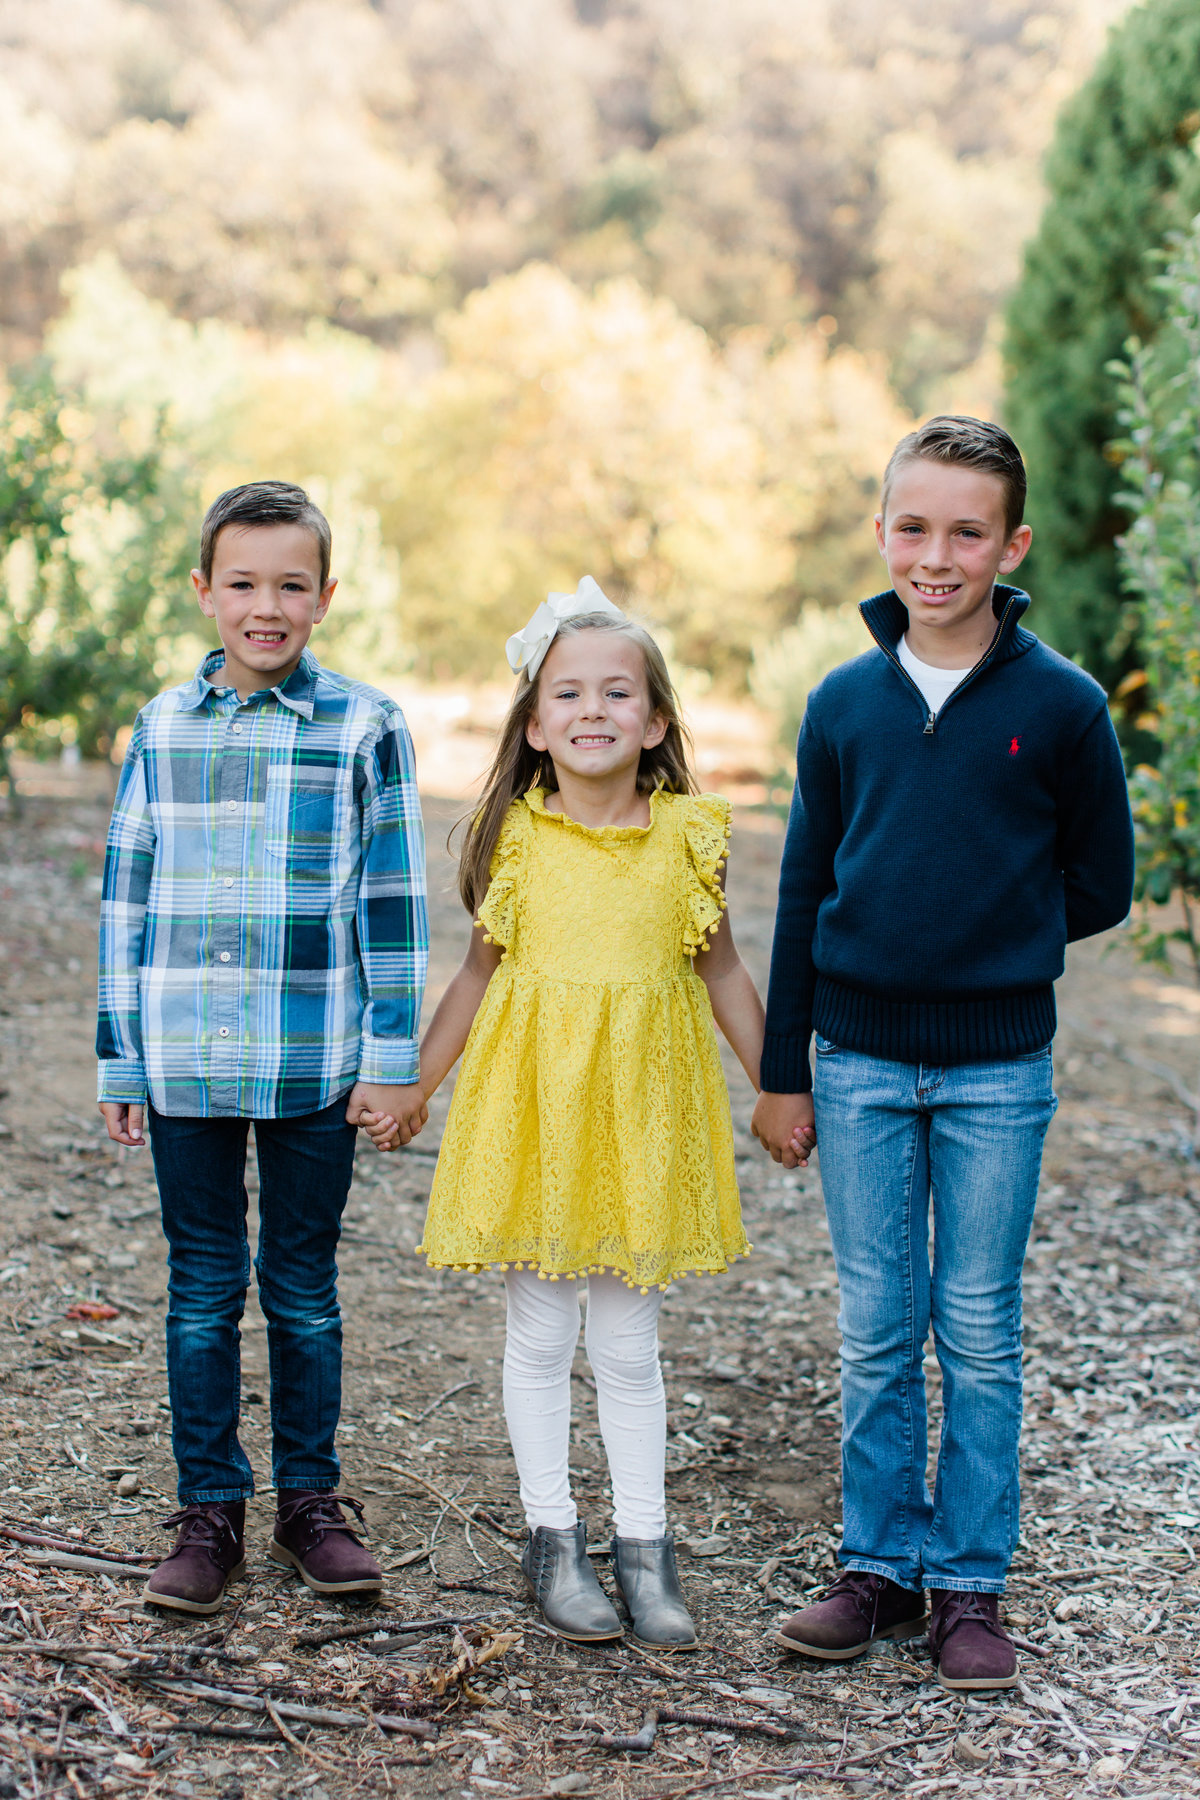 The Dahnke Family 2018 | Oak Glen Holiday Photographer | Katie Schoepflin Photography124